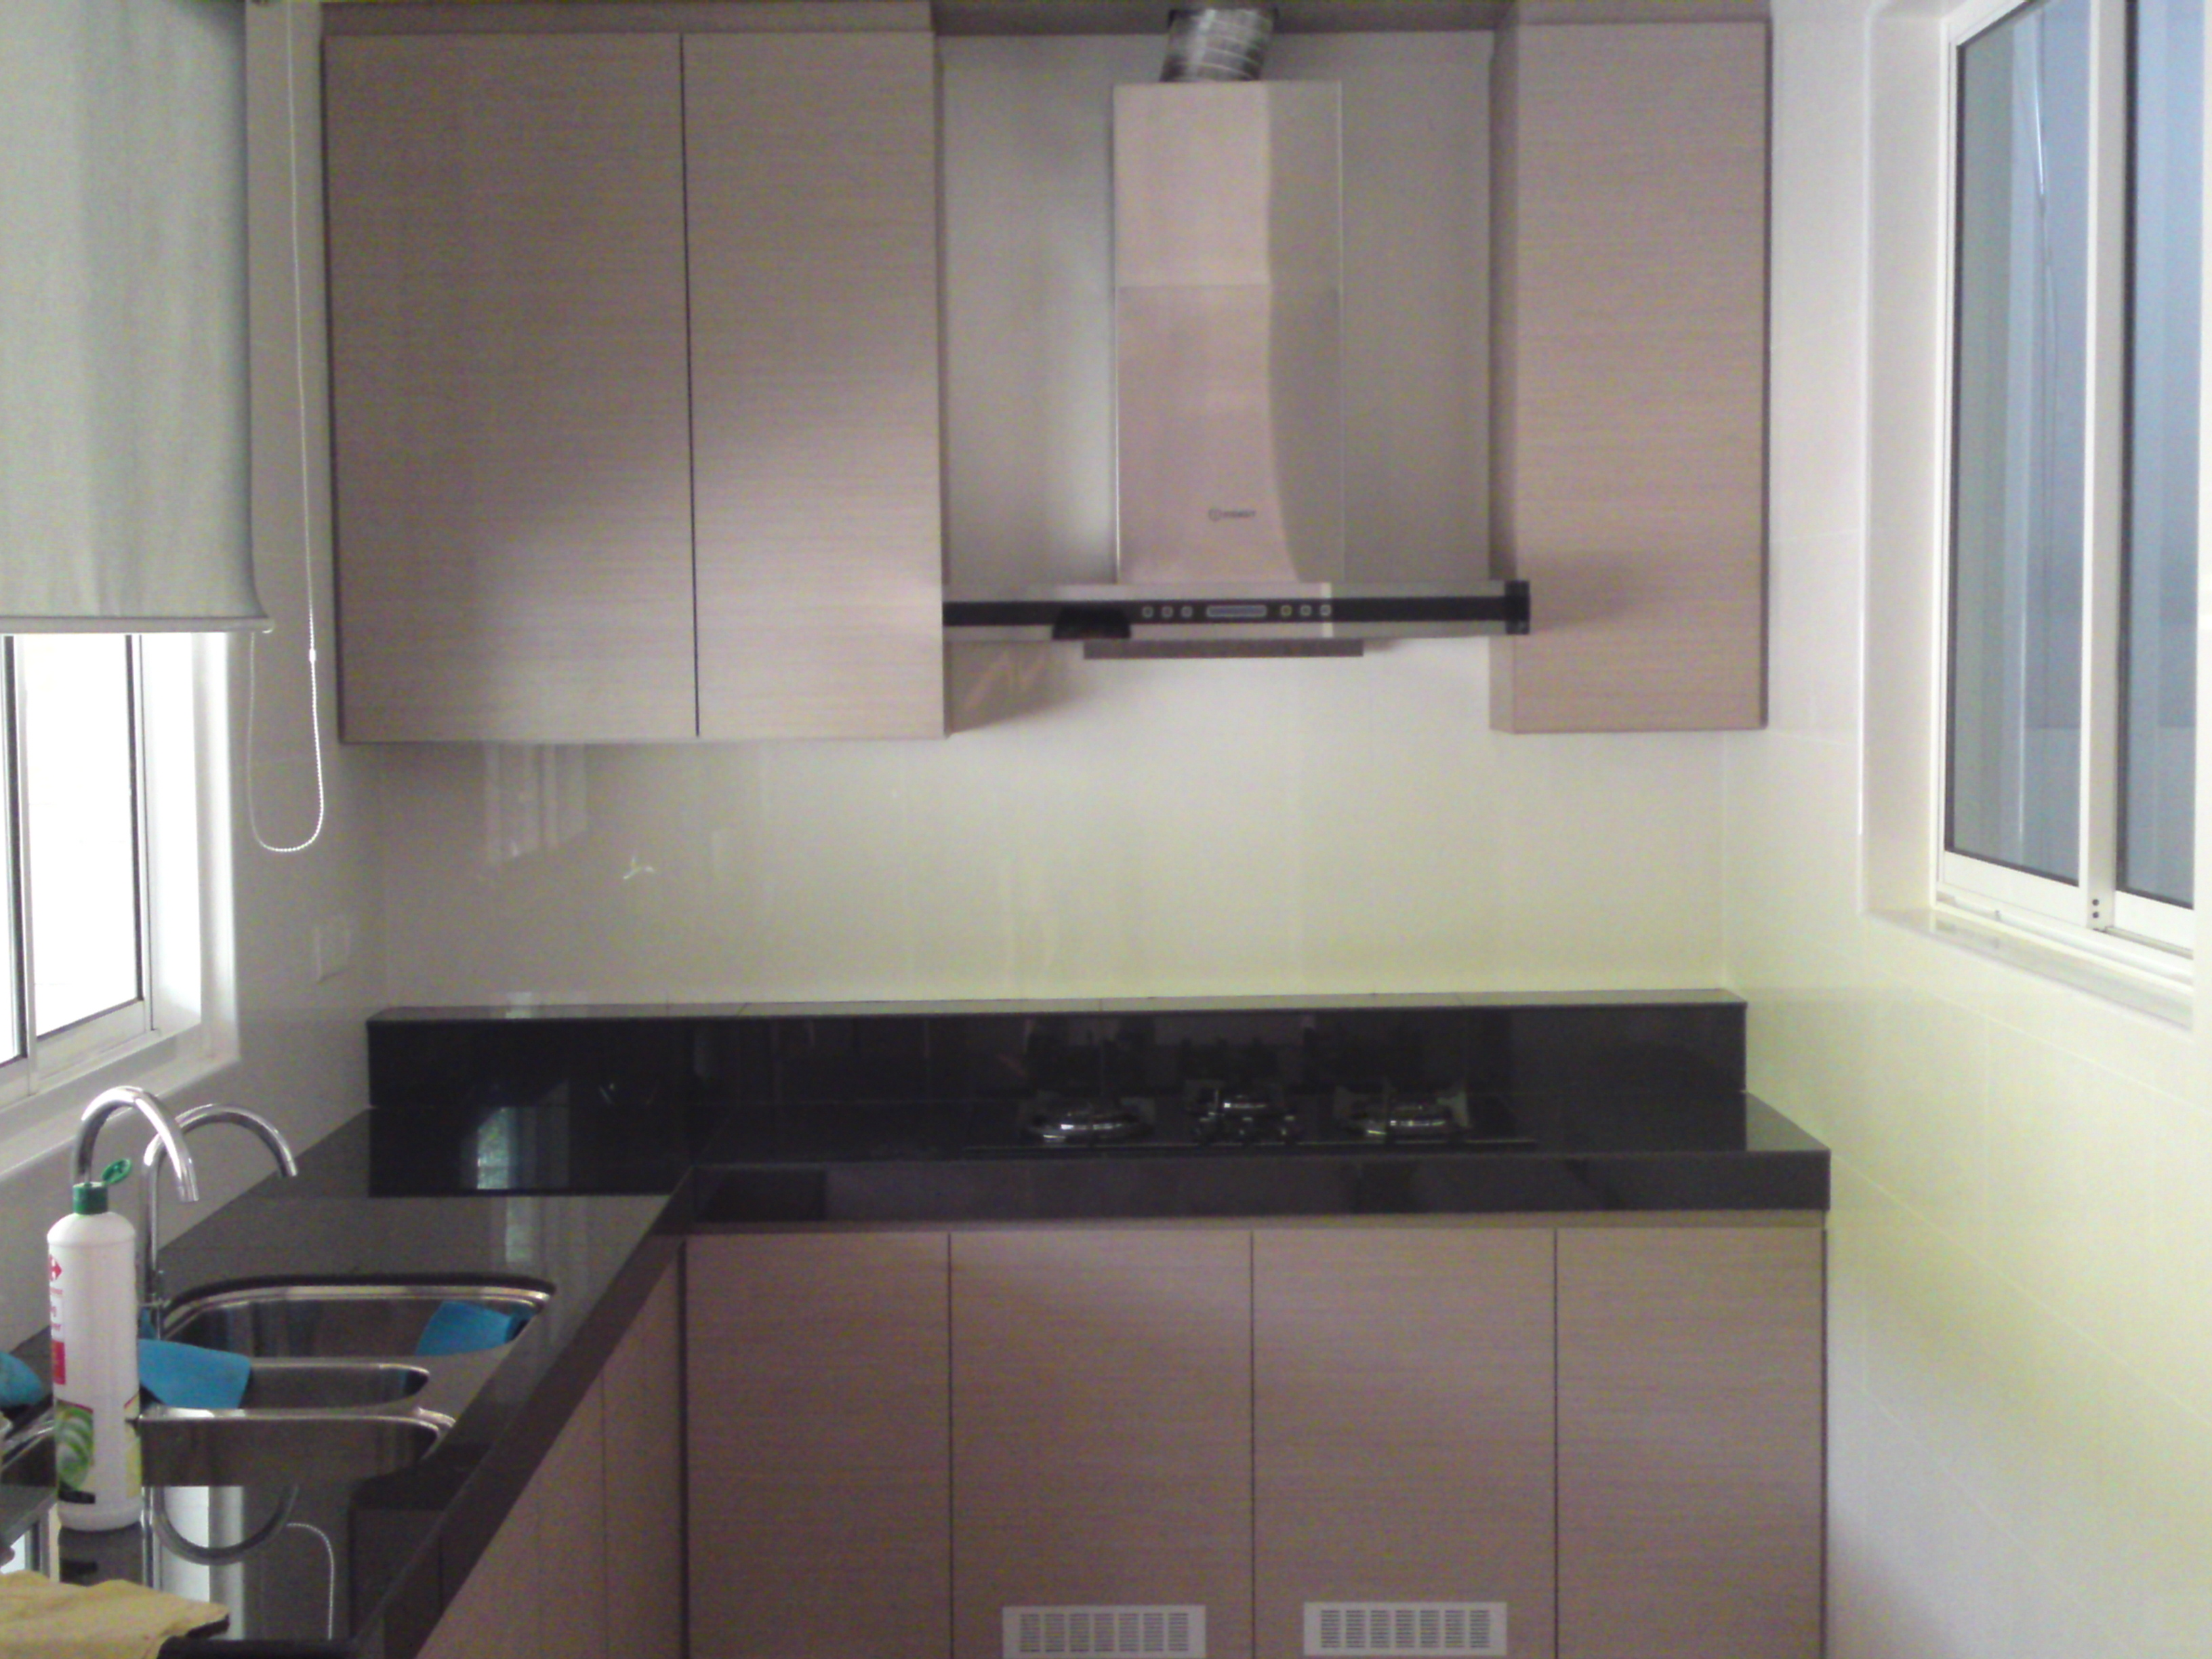 formica kitchen cabinets cheap kitchen cabinets Painting Or Refacing Formica Cabinets